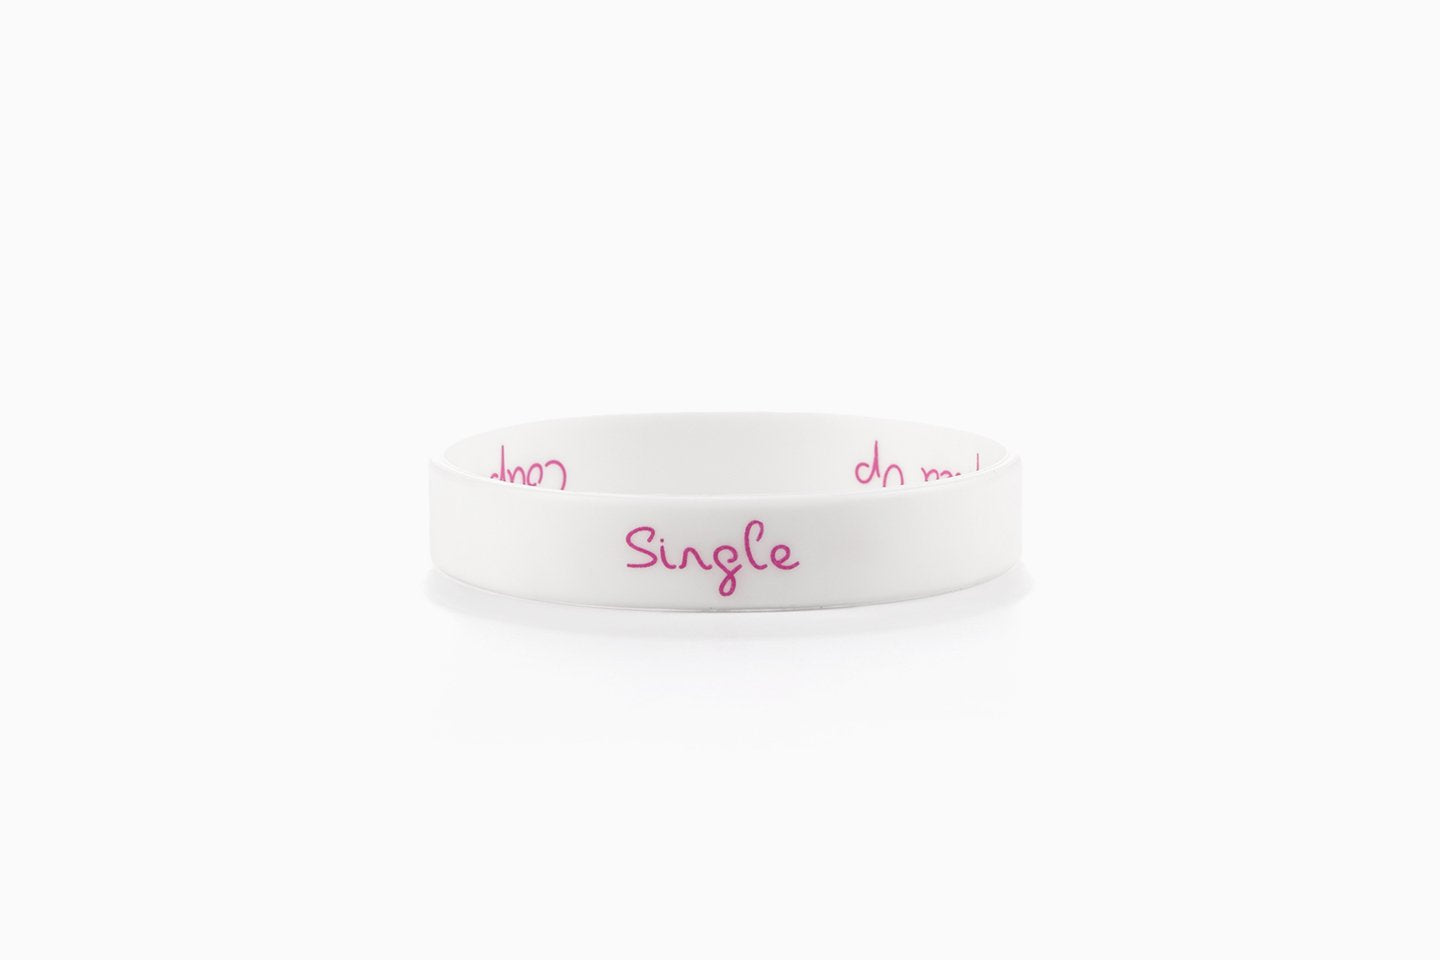 Official Love Island Reversible Wristband - Coupled Up/Single